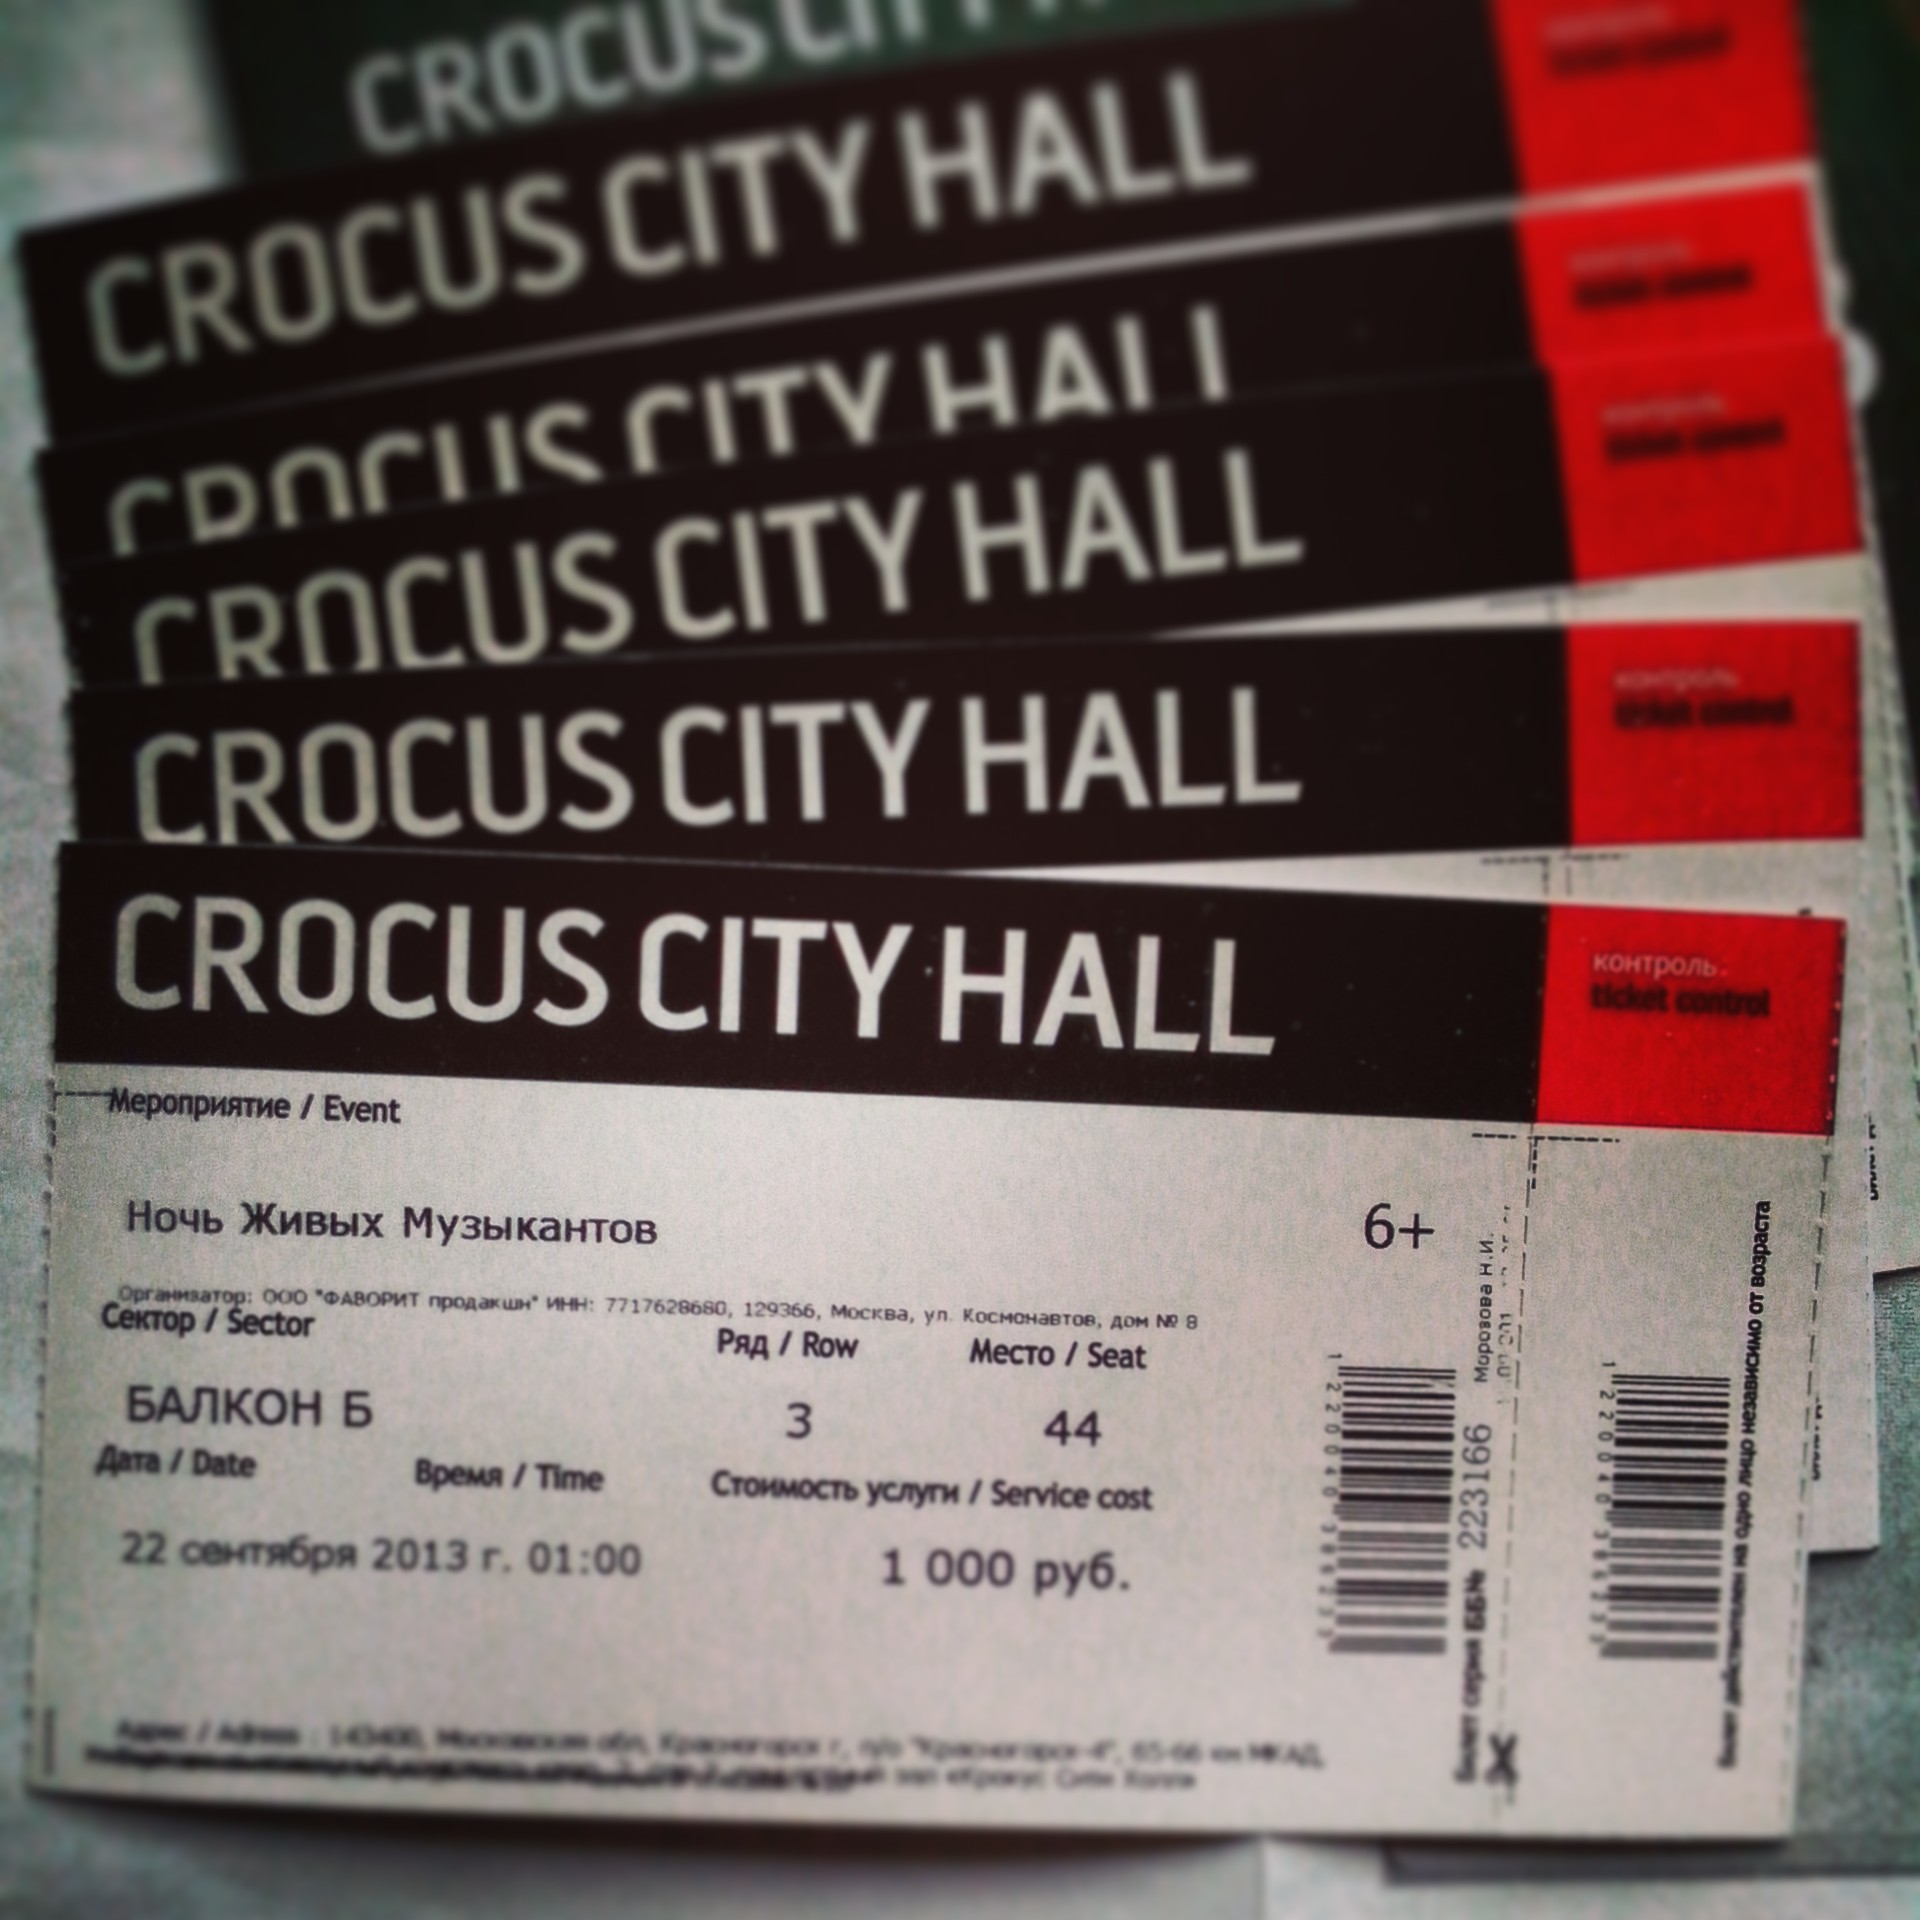 Tickets in crocus city hall